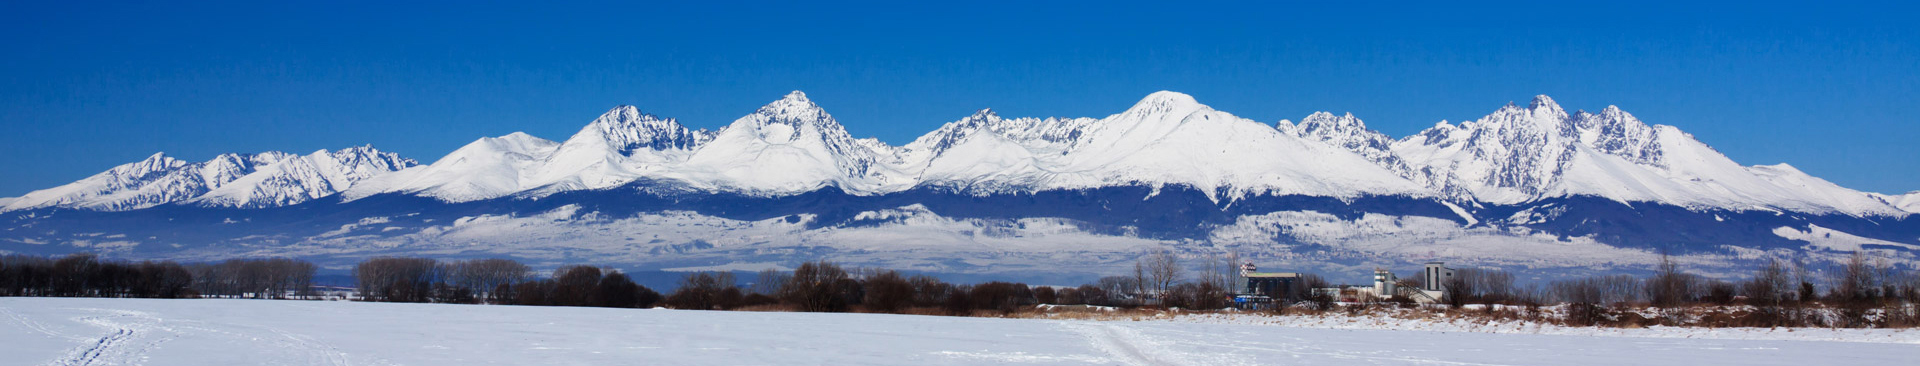 High Tatras in winter